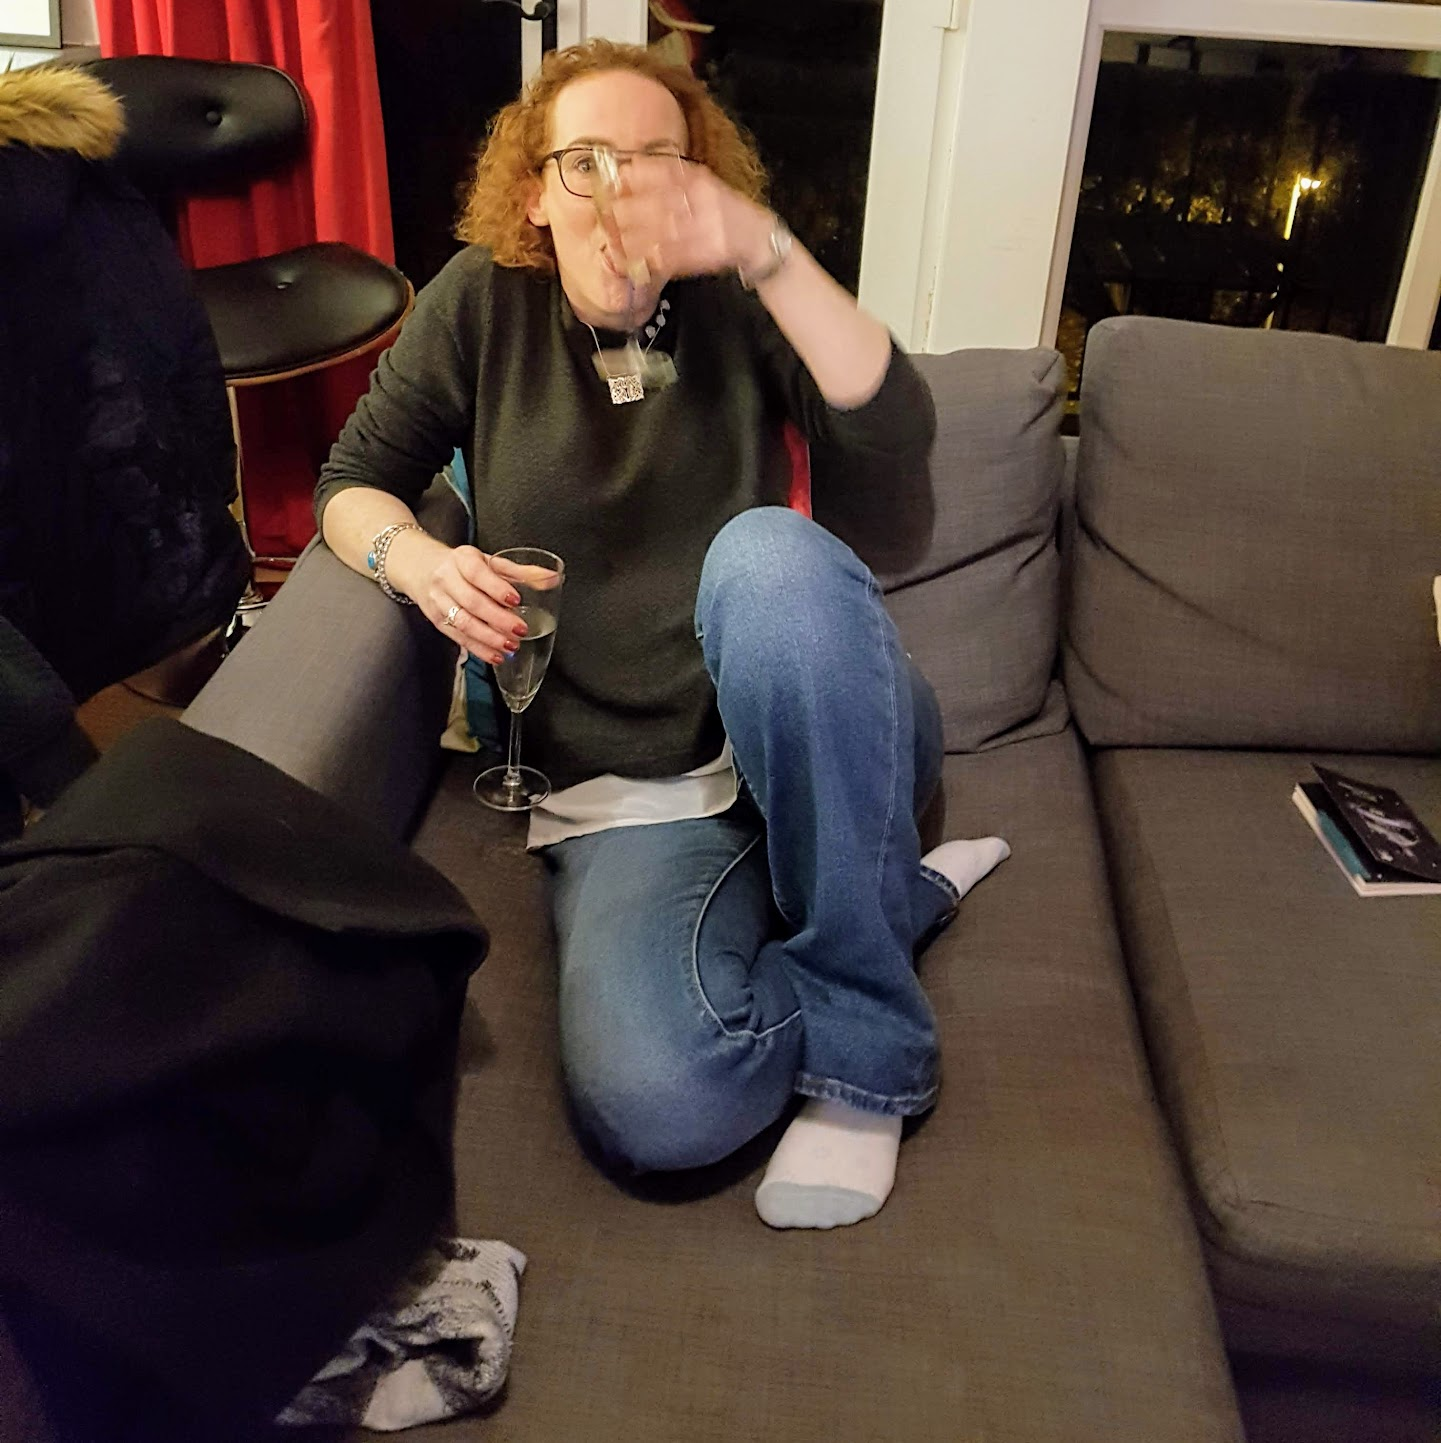 Prosecco in the Airbnb apartment